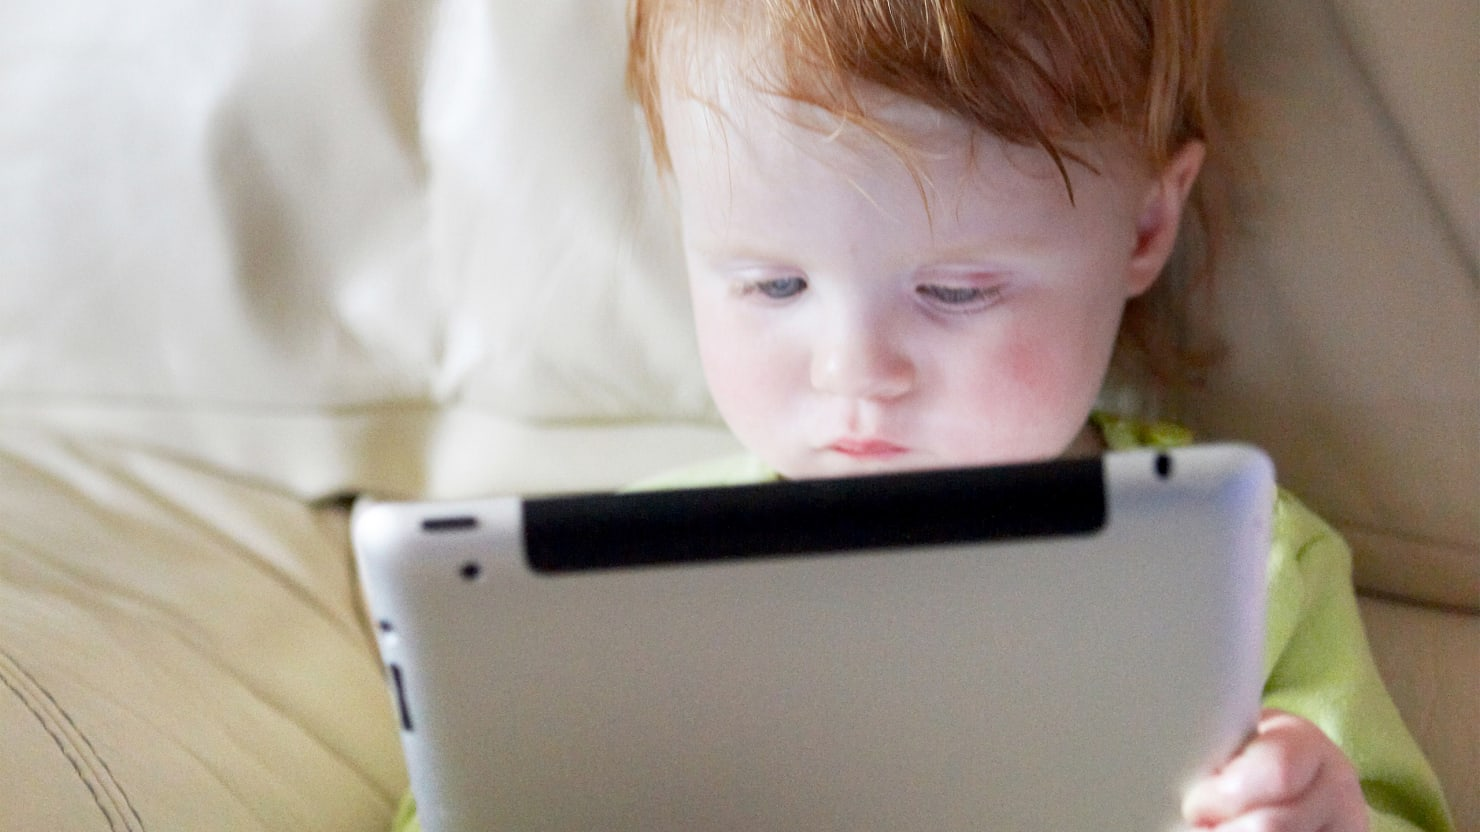 Yes, Your Toddler Can Watch TV: The New Rules for Screen Time